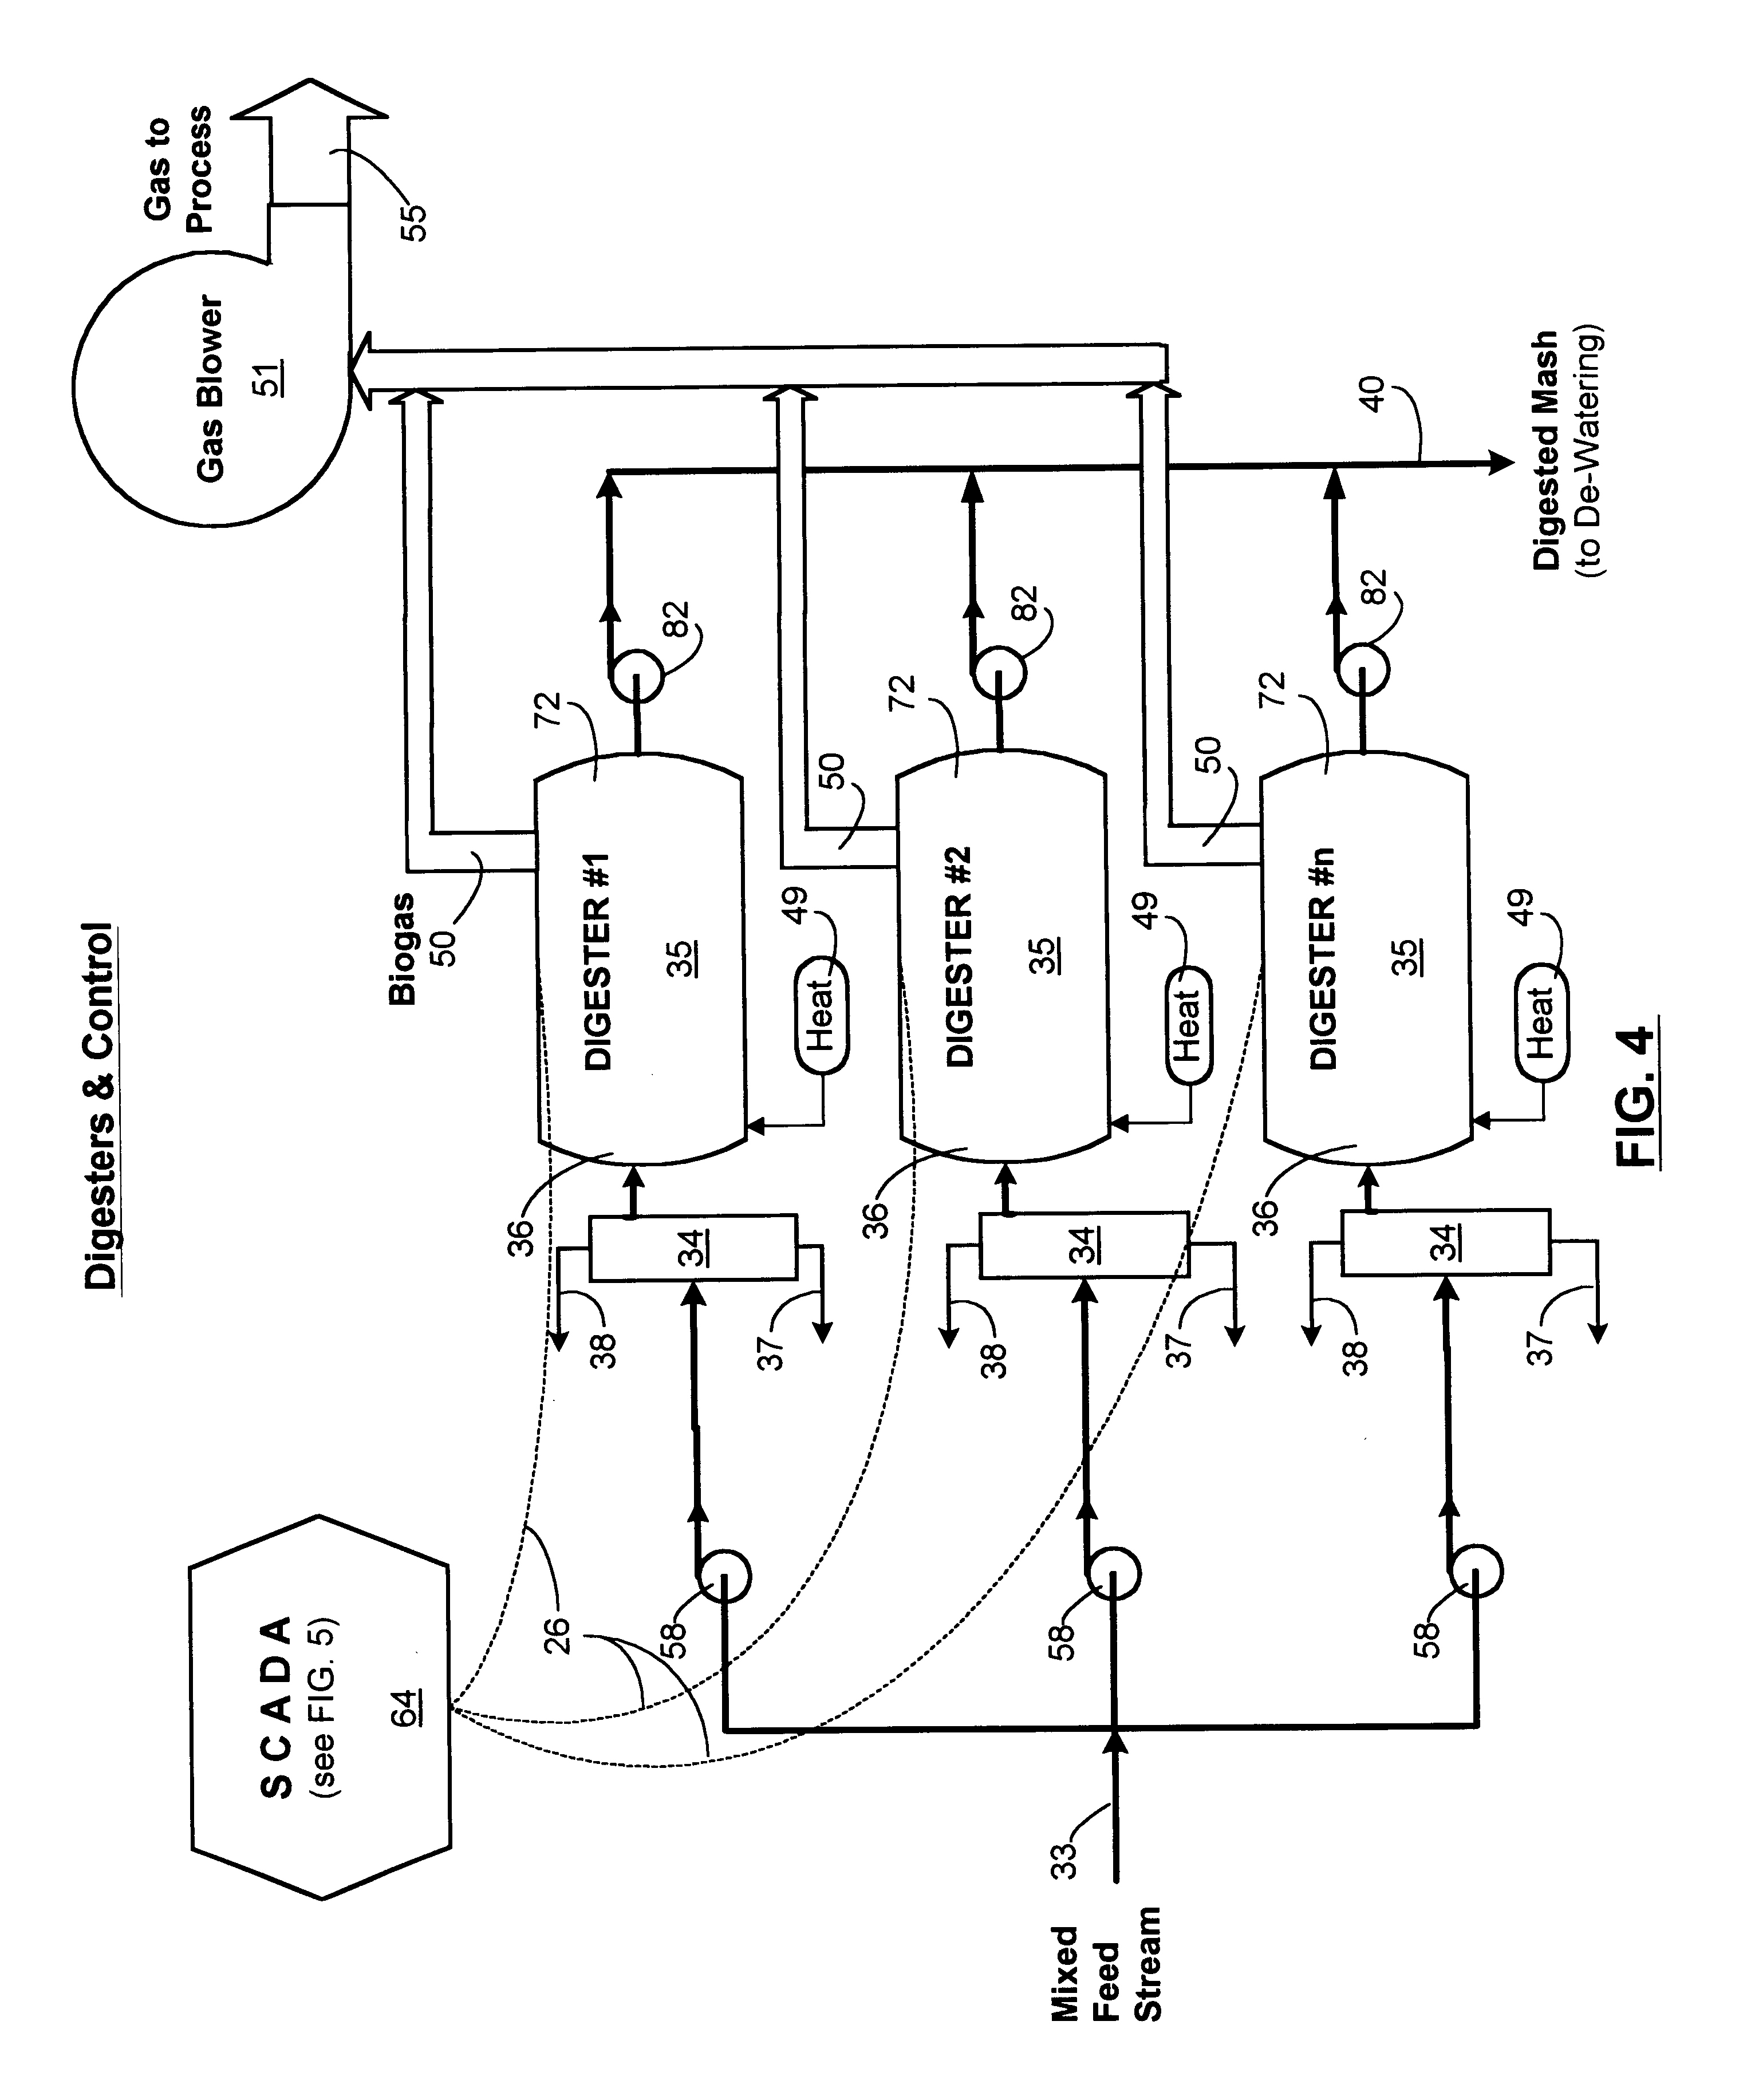 patent us6296766 - anaerobic digester system